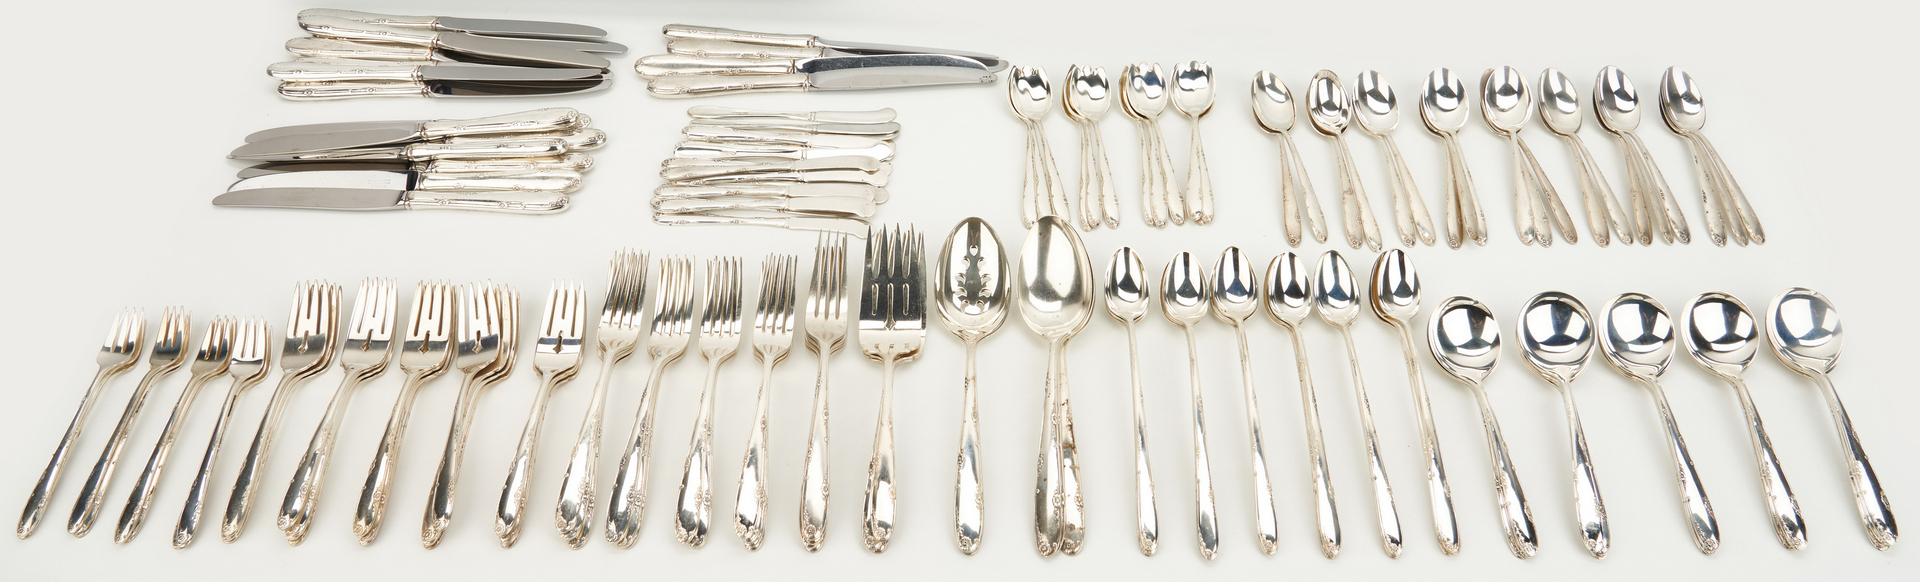 Lot 57: 192 Pcs. Towle Madeira Sterling Flatware